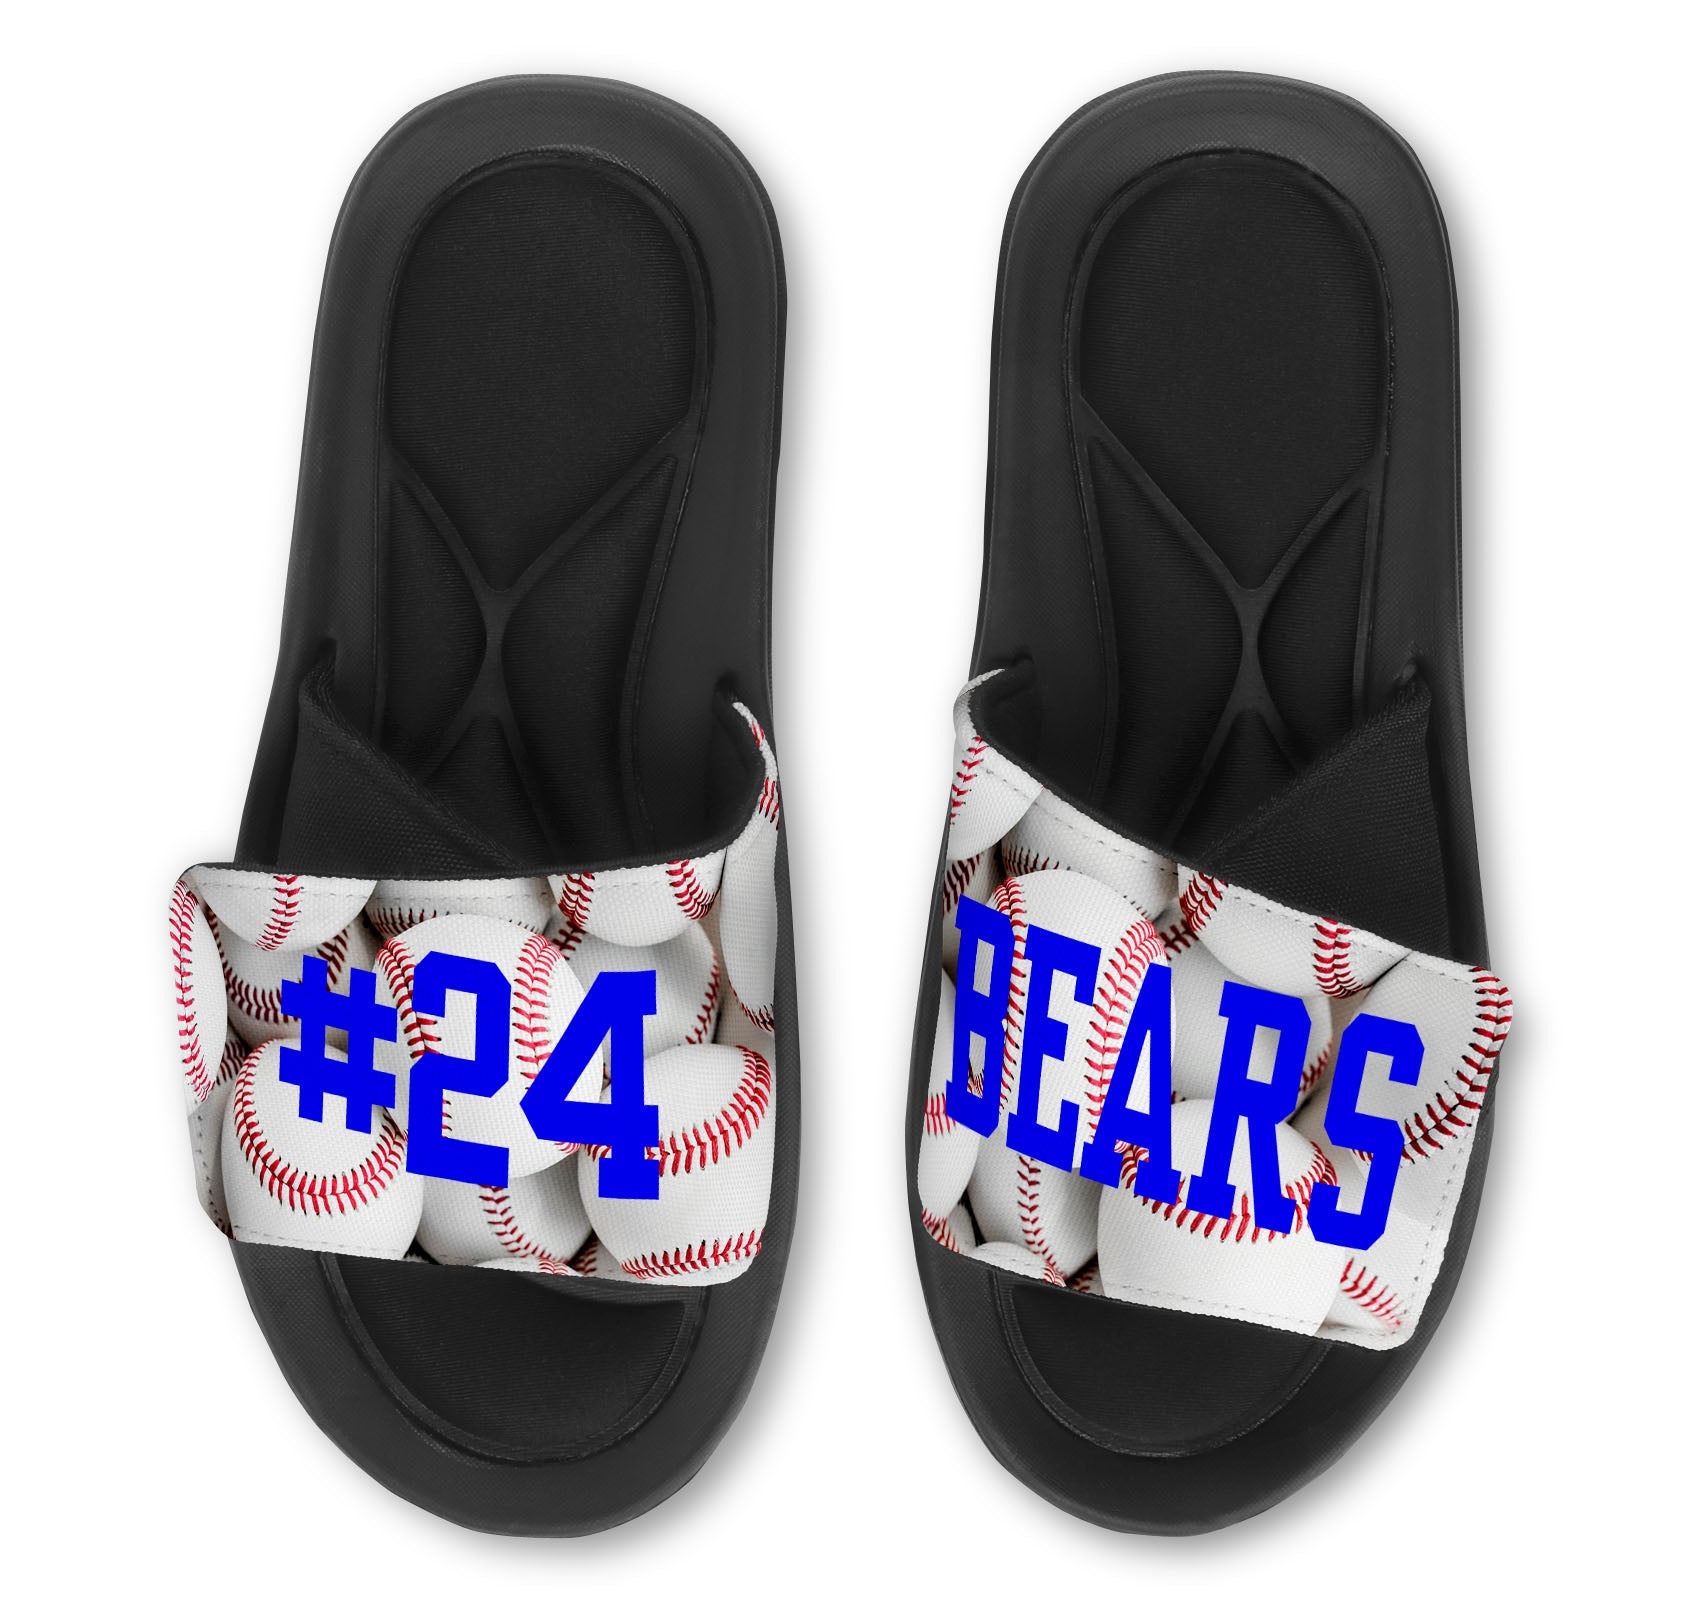 Baseball Slides - Customize with Your Name & Number